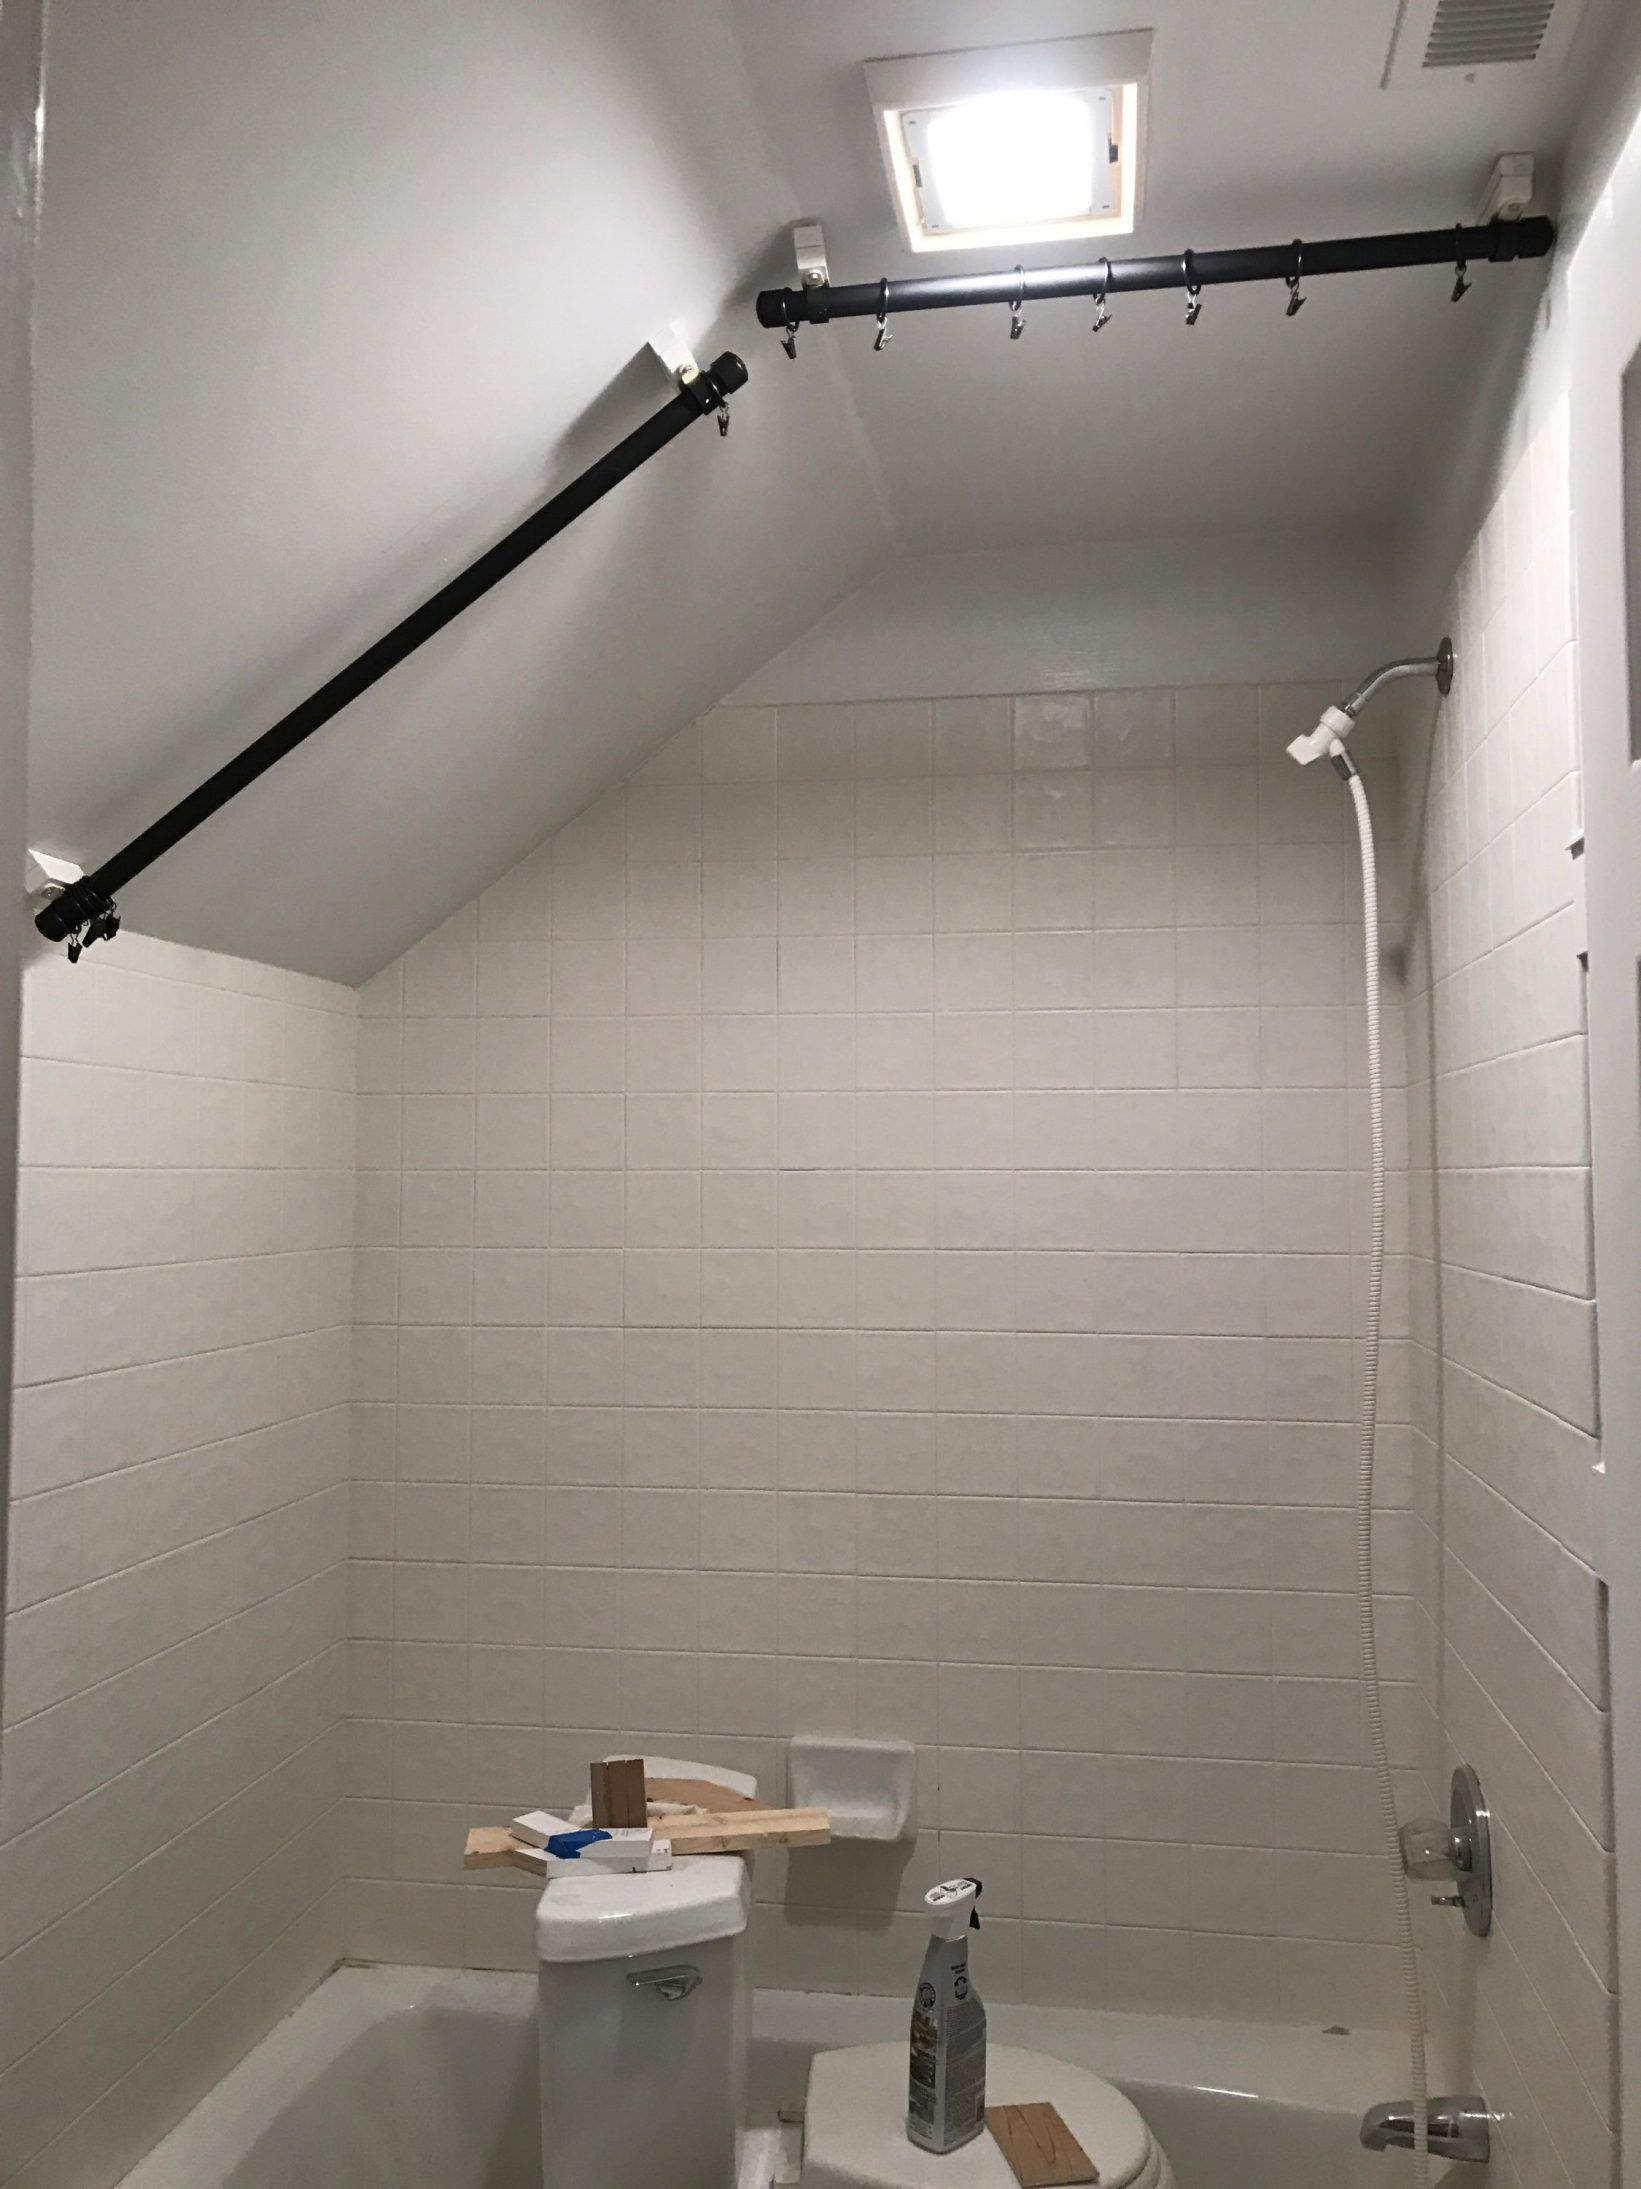 Diy Angled Ceiling Shower Curtain Rod Ambler Harmon